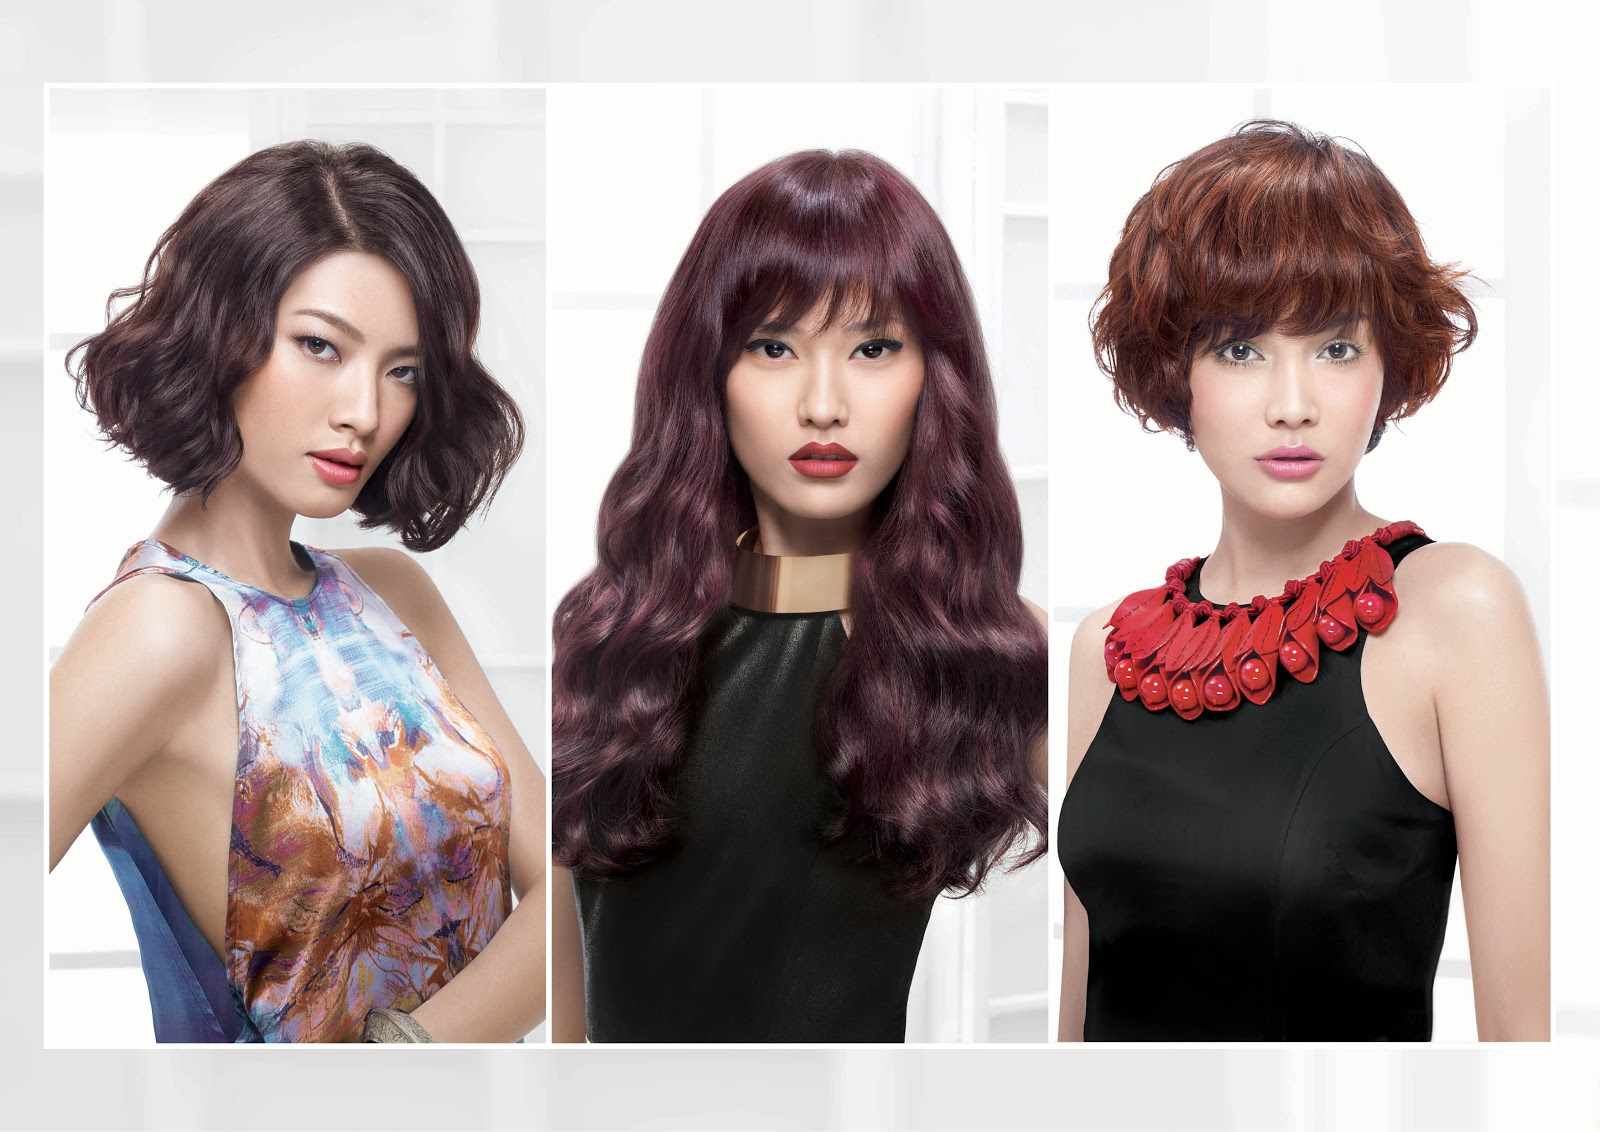 korean soft digital perm hairstyles for 2013 best hairstyles. 1600 x 1132.Hairstyles Perms 2013